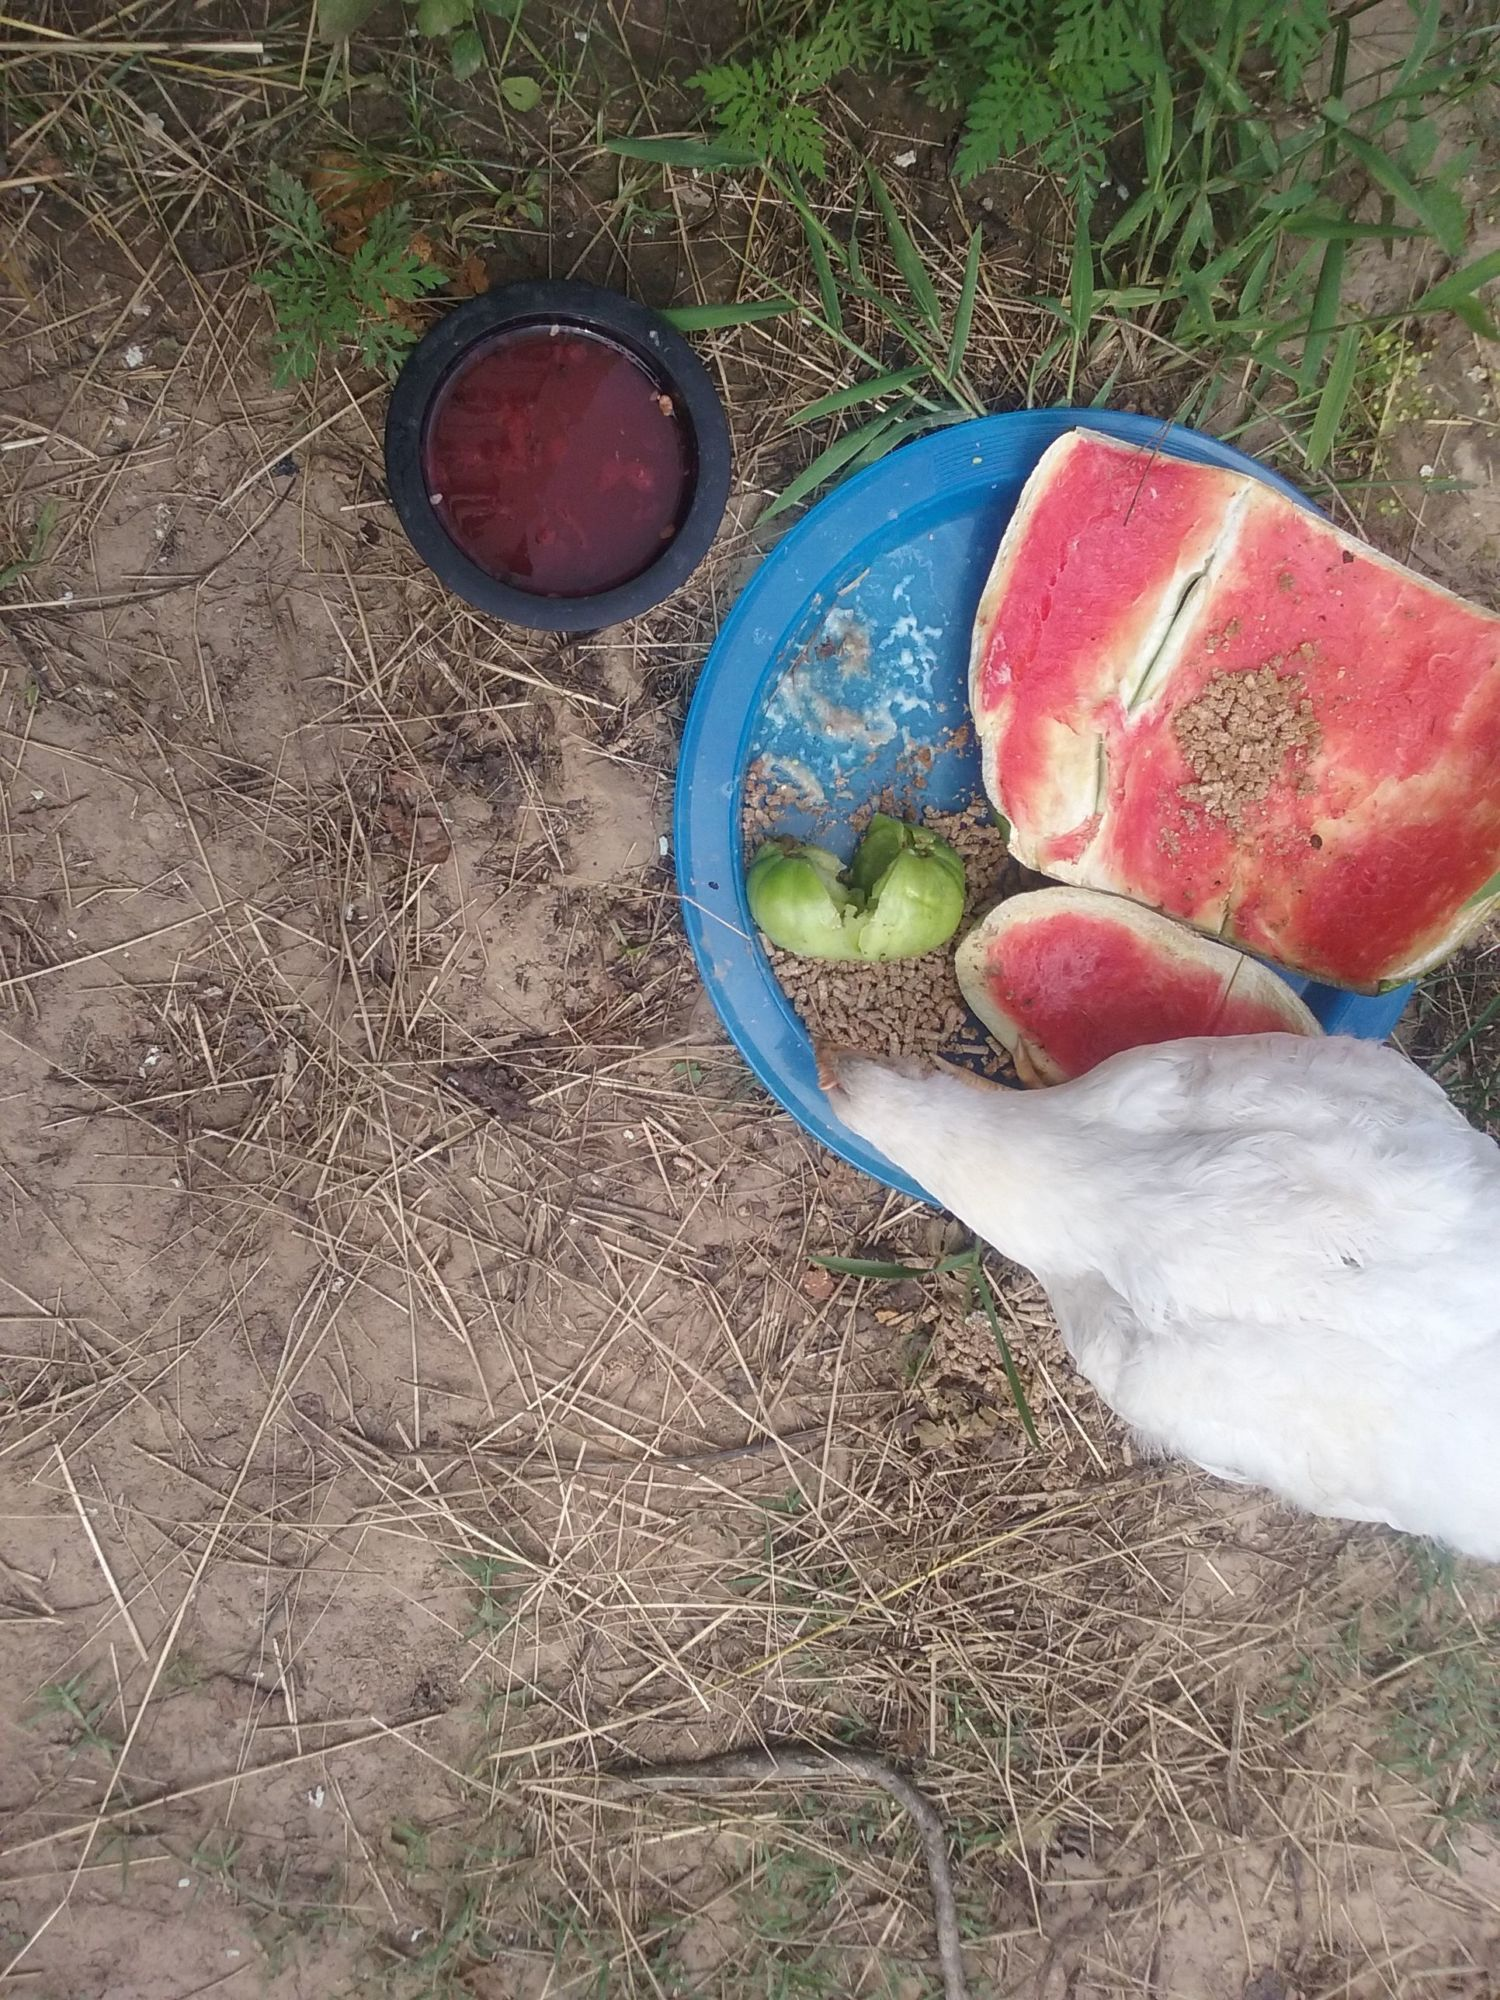 Lucky Lady enjoying her buffet of watermelon rinds, green tomato, rice cereal, & watermelon water with the seeds. Oh, and of course, watermelon soaked chicken feed; she refuses to eat it dry. 😕